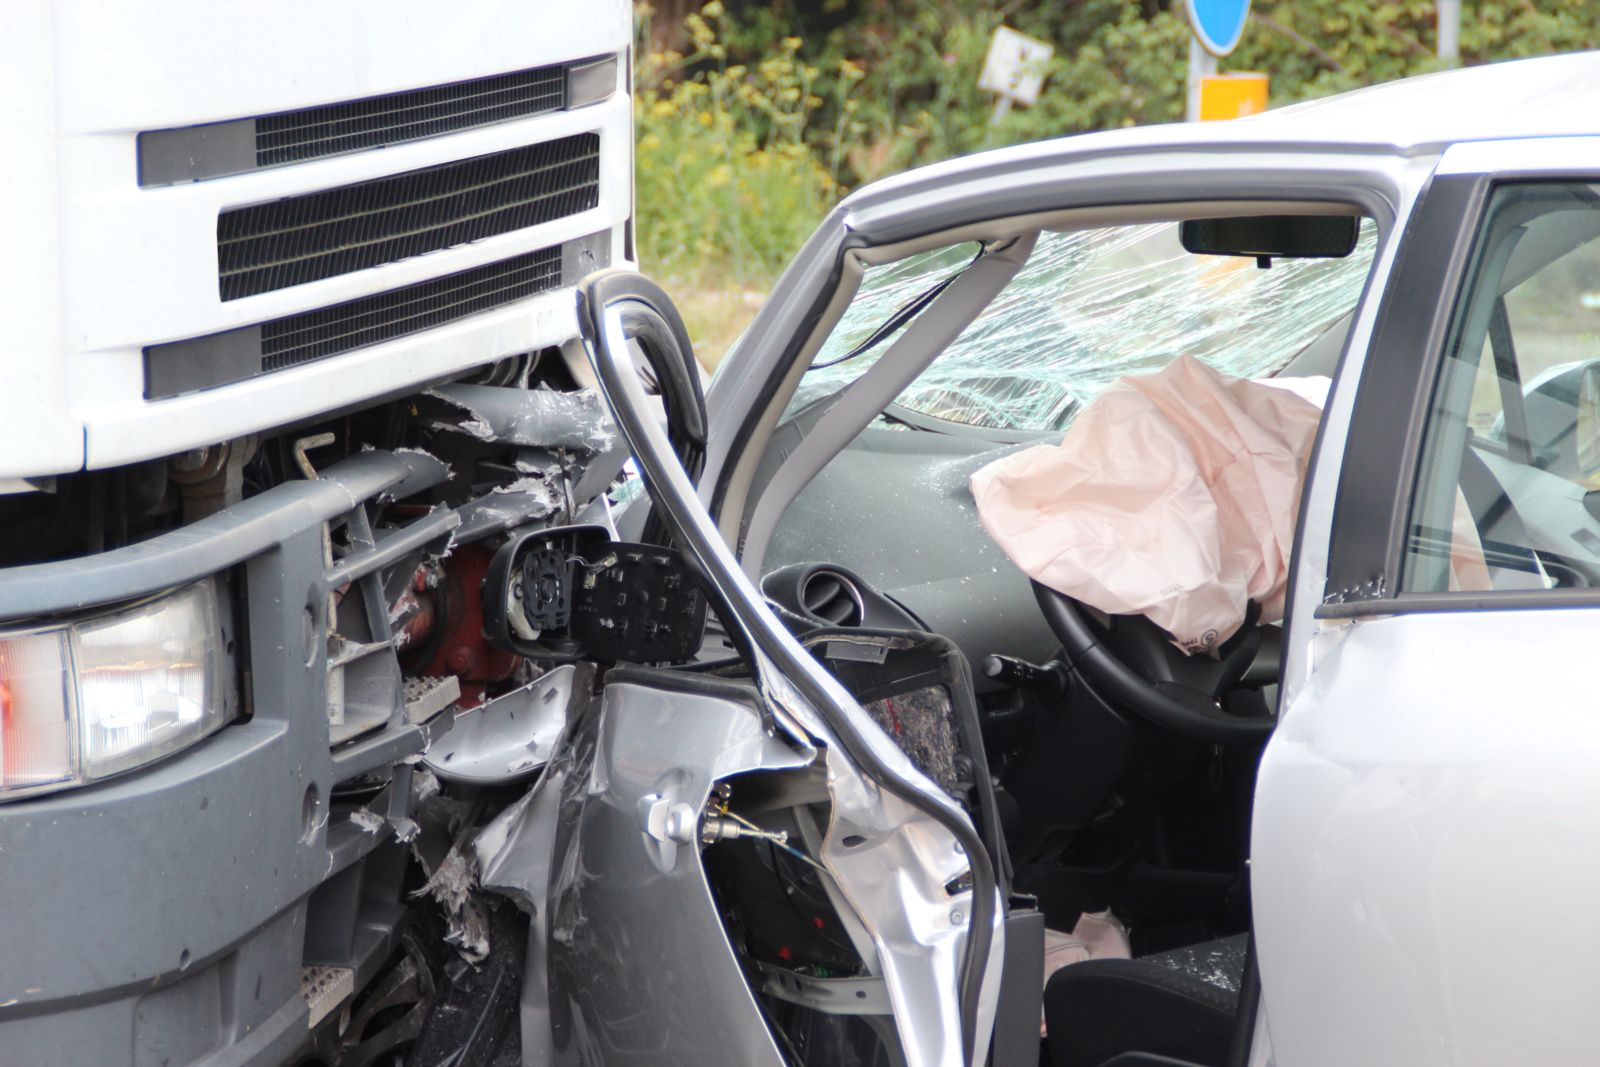 Semi truck hits passenger car head on causing severe damage and injuries.